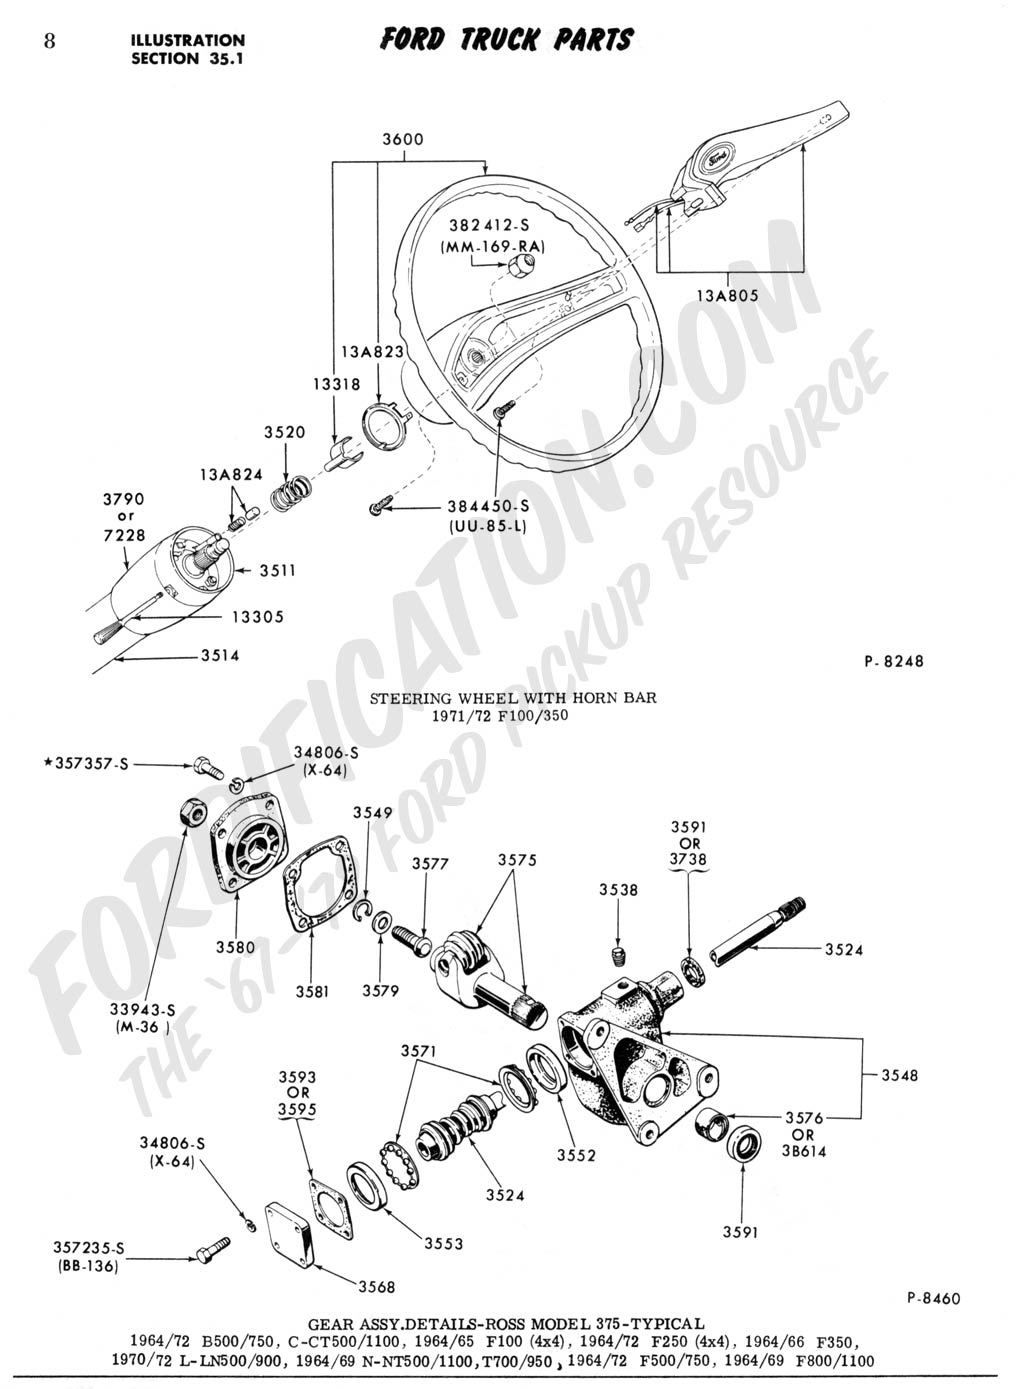 1978 F250 Steering Column Wiring Diagram Schematics Diagrams 1975 Ford 1974 F100 Data U2022 Rh Mikeadkinsguitar Com 2006 F 250 1973 Alternator